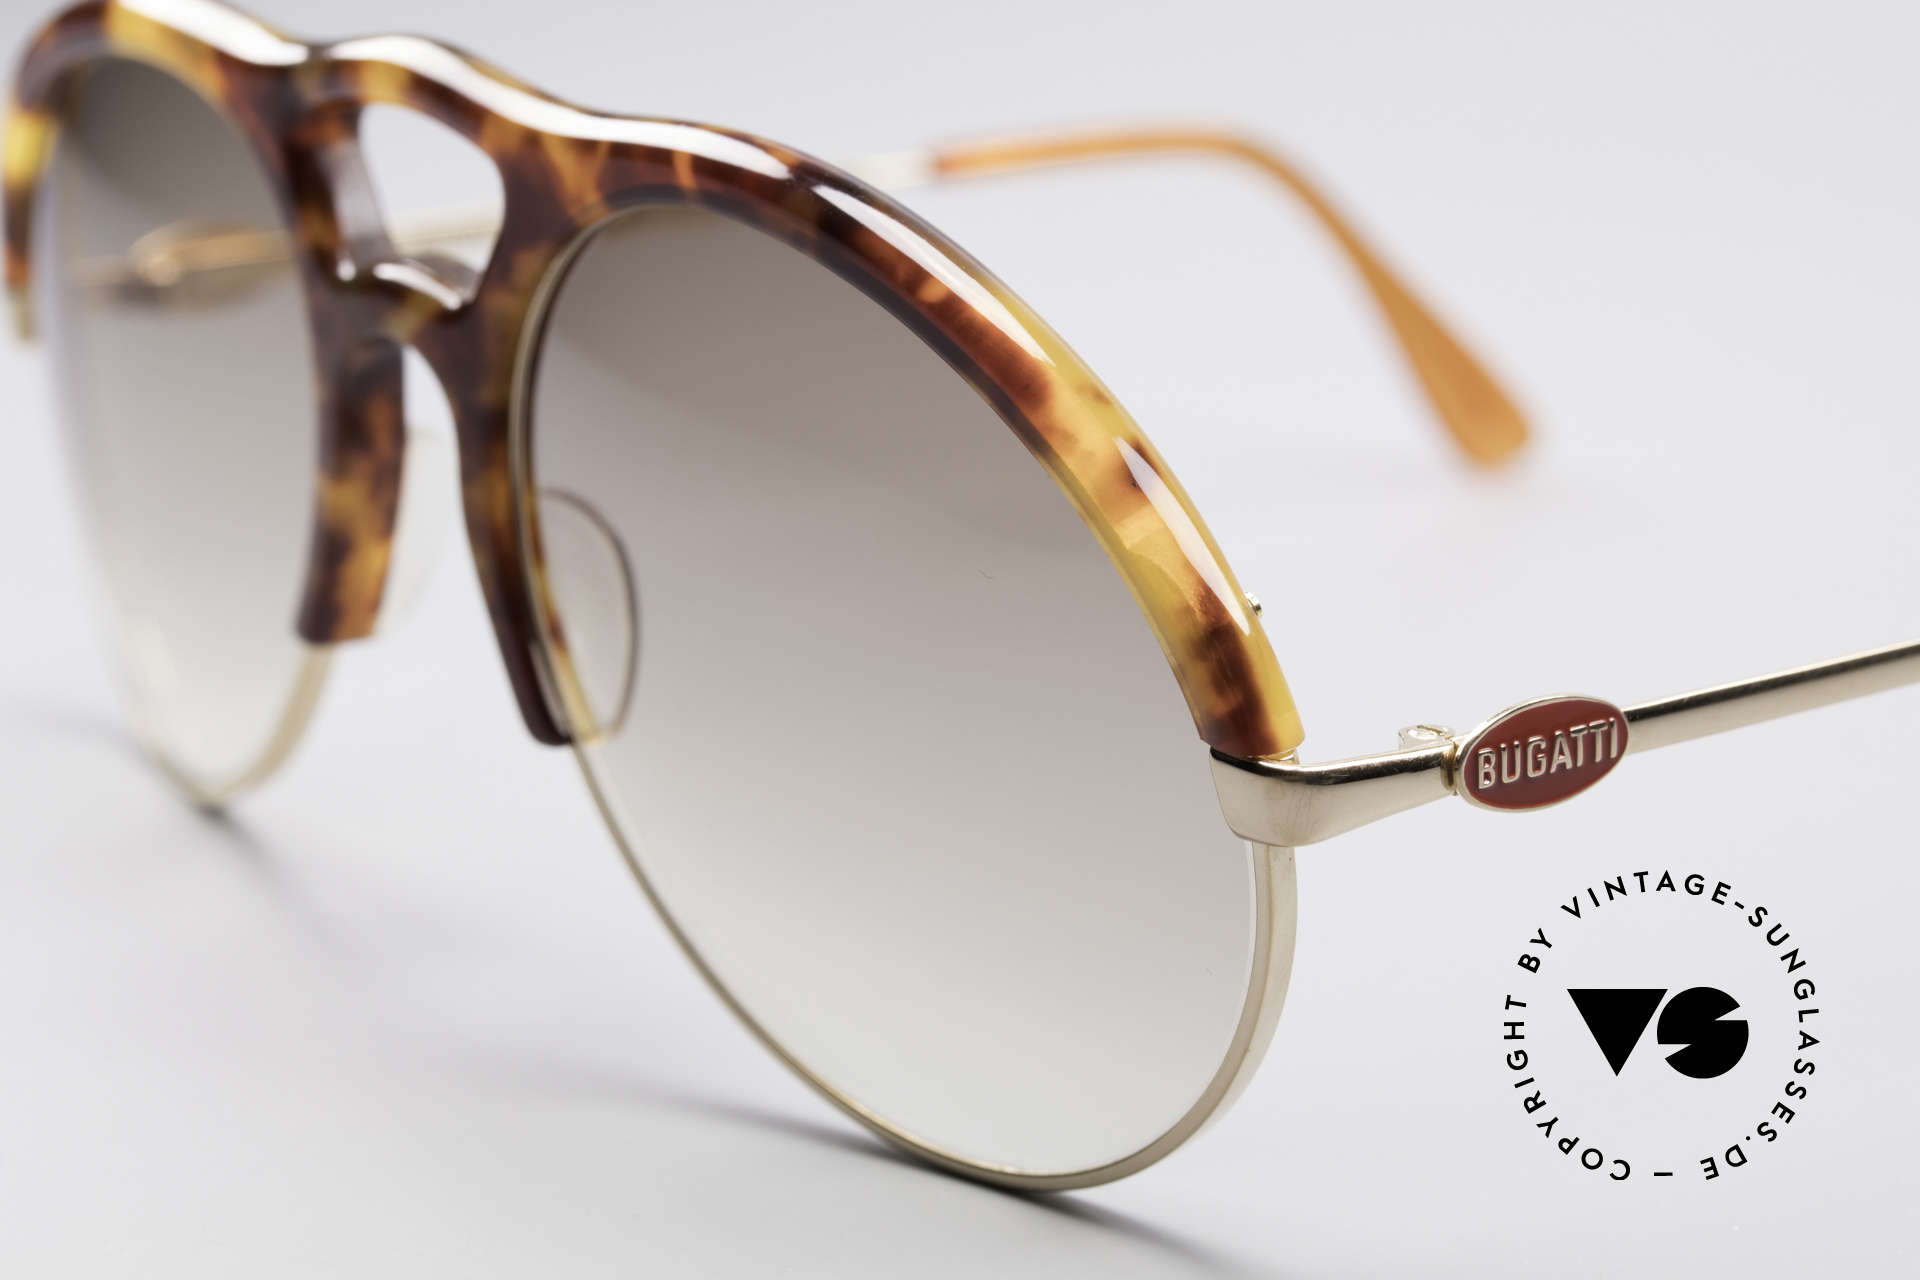 Bugatti 64900 Tortoise Optic 80's Glasses, sought-after collector's item with gold-plated metal, Made for Men